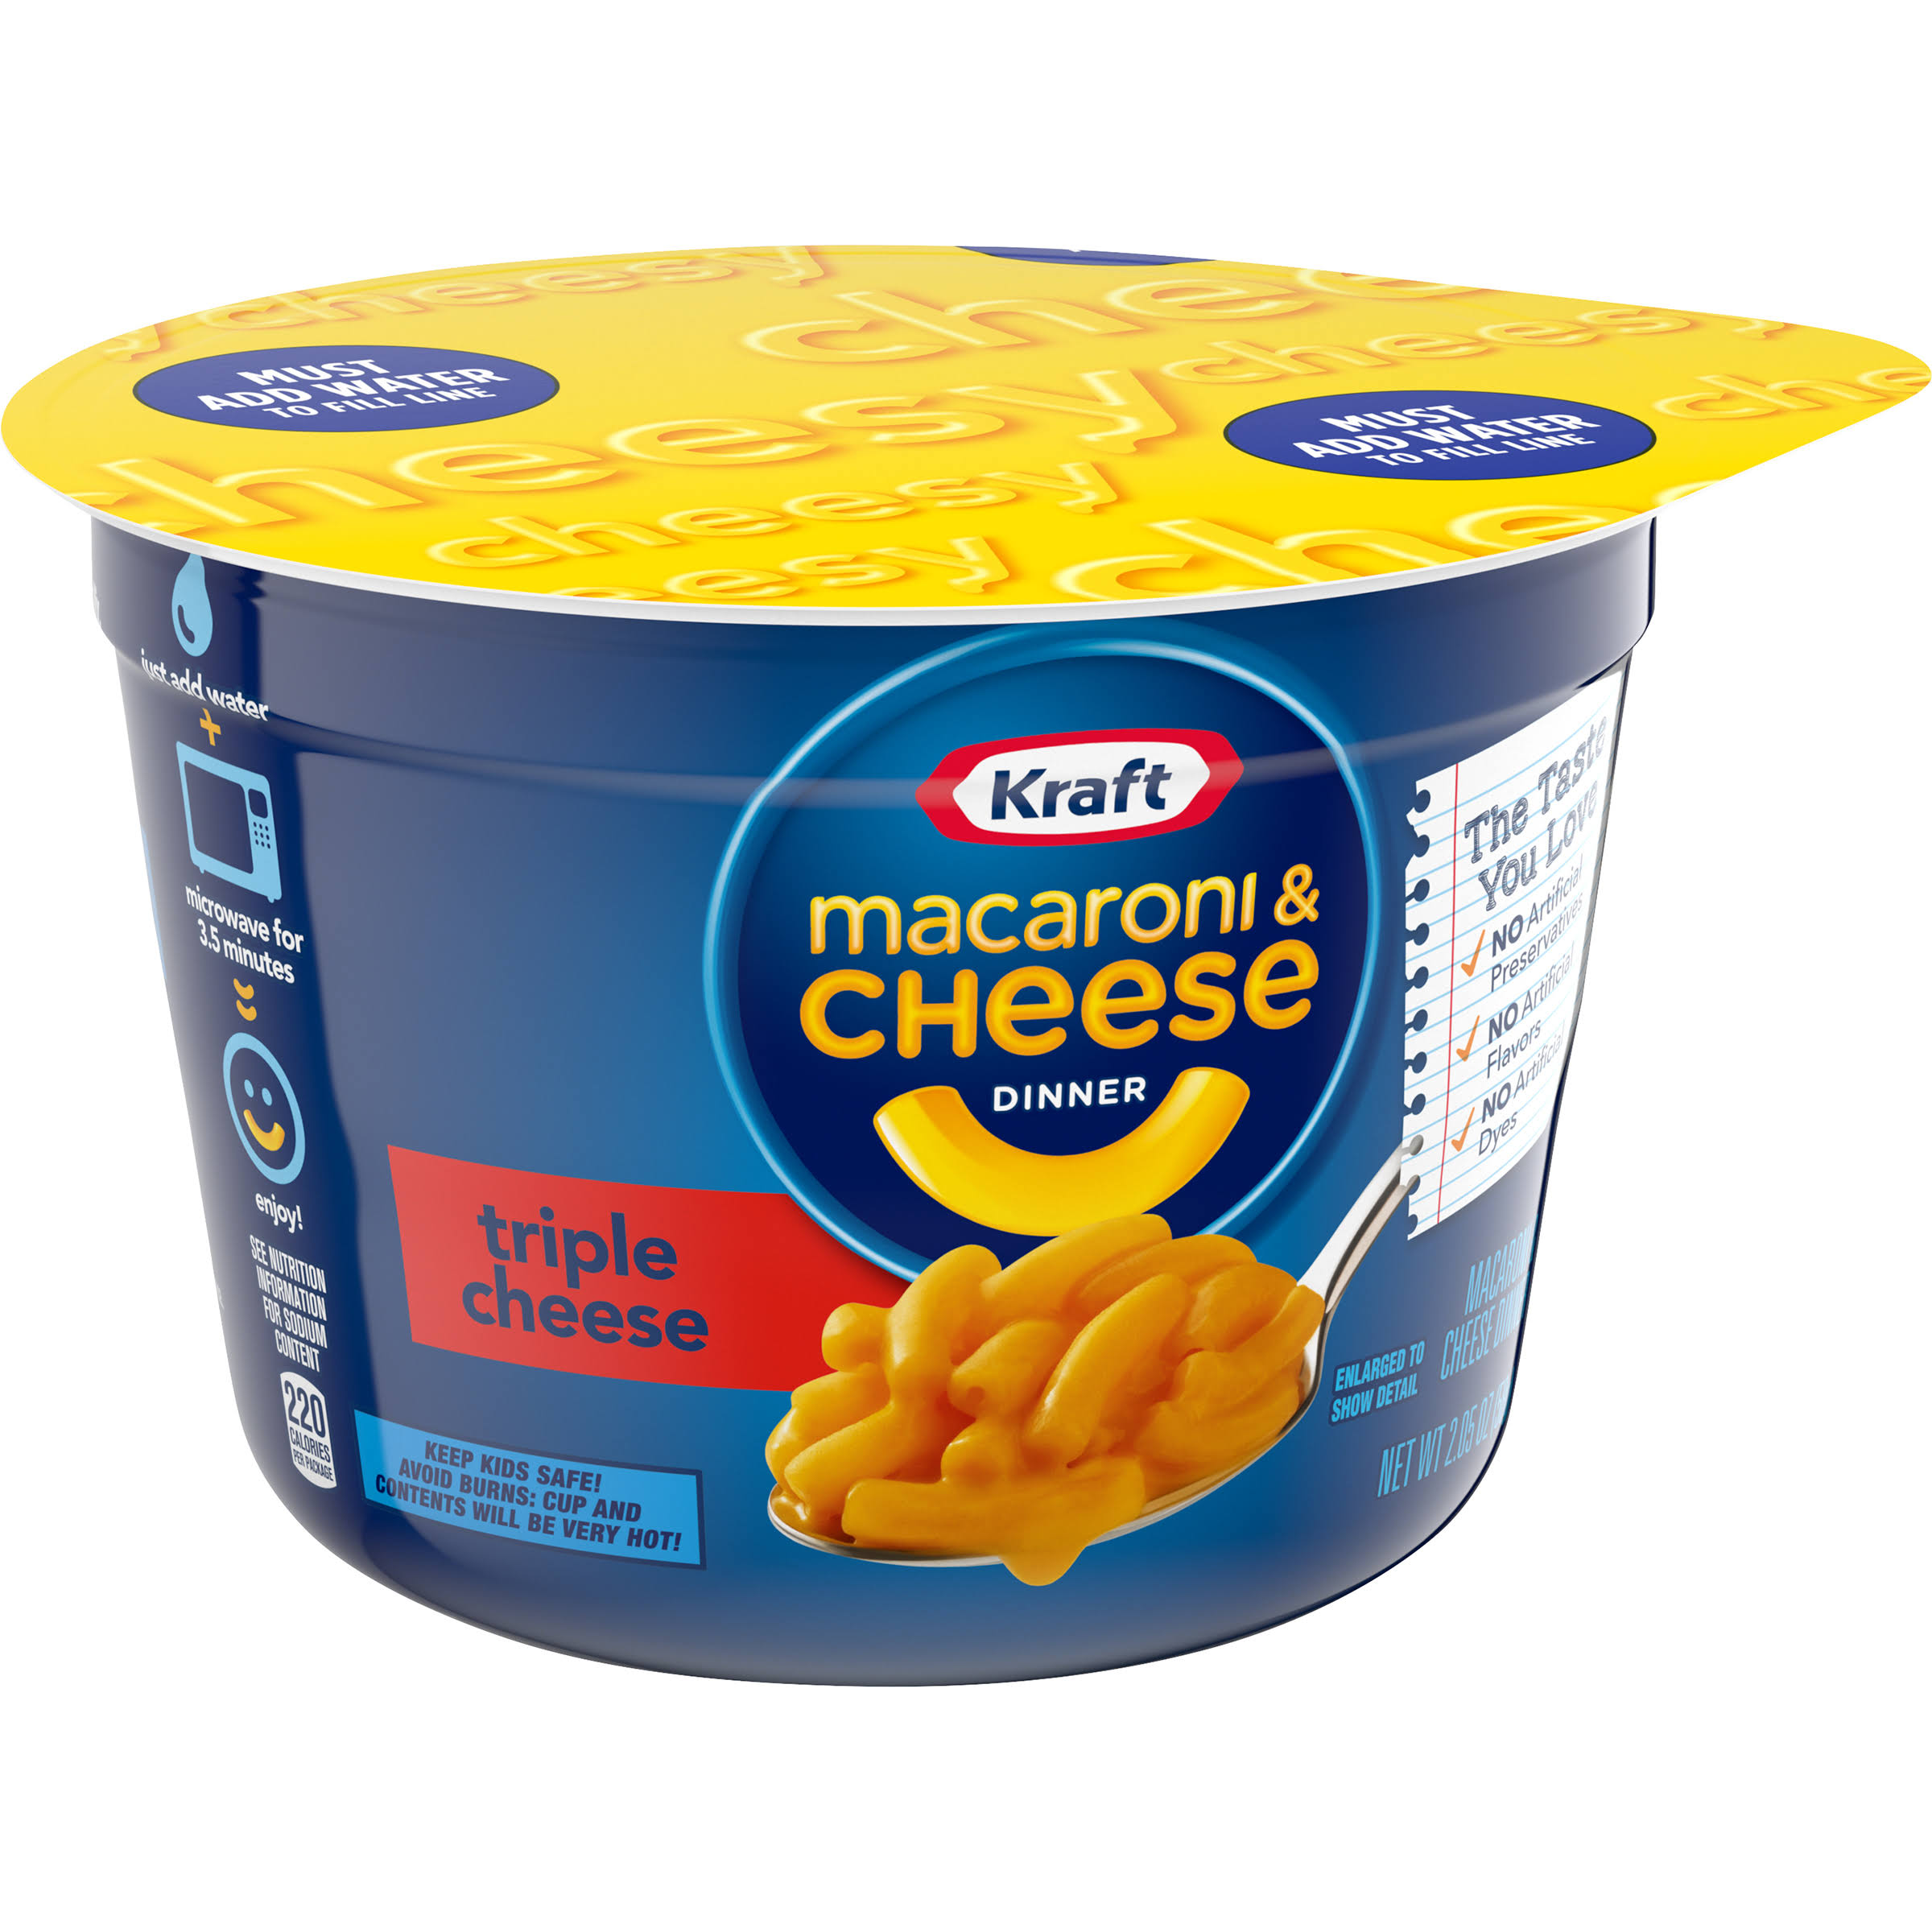 Kraft Macaroni and Cheese Dinner - Triple Cheese, 2.05oz